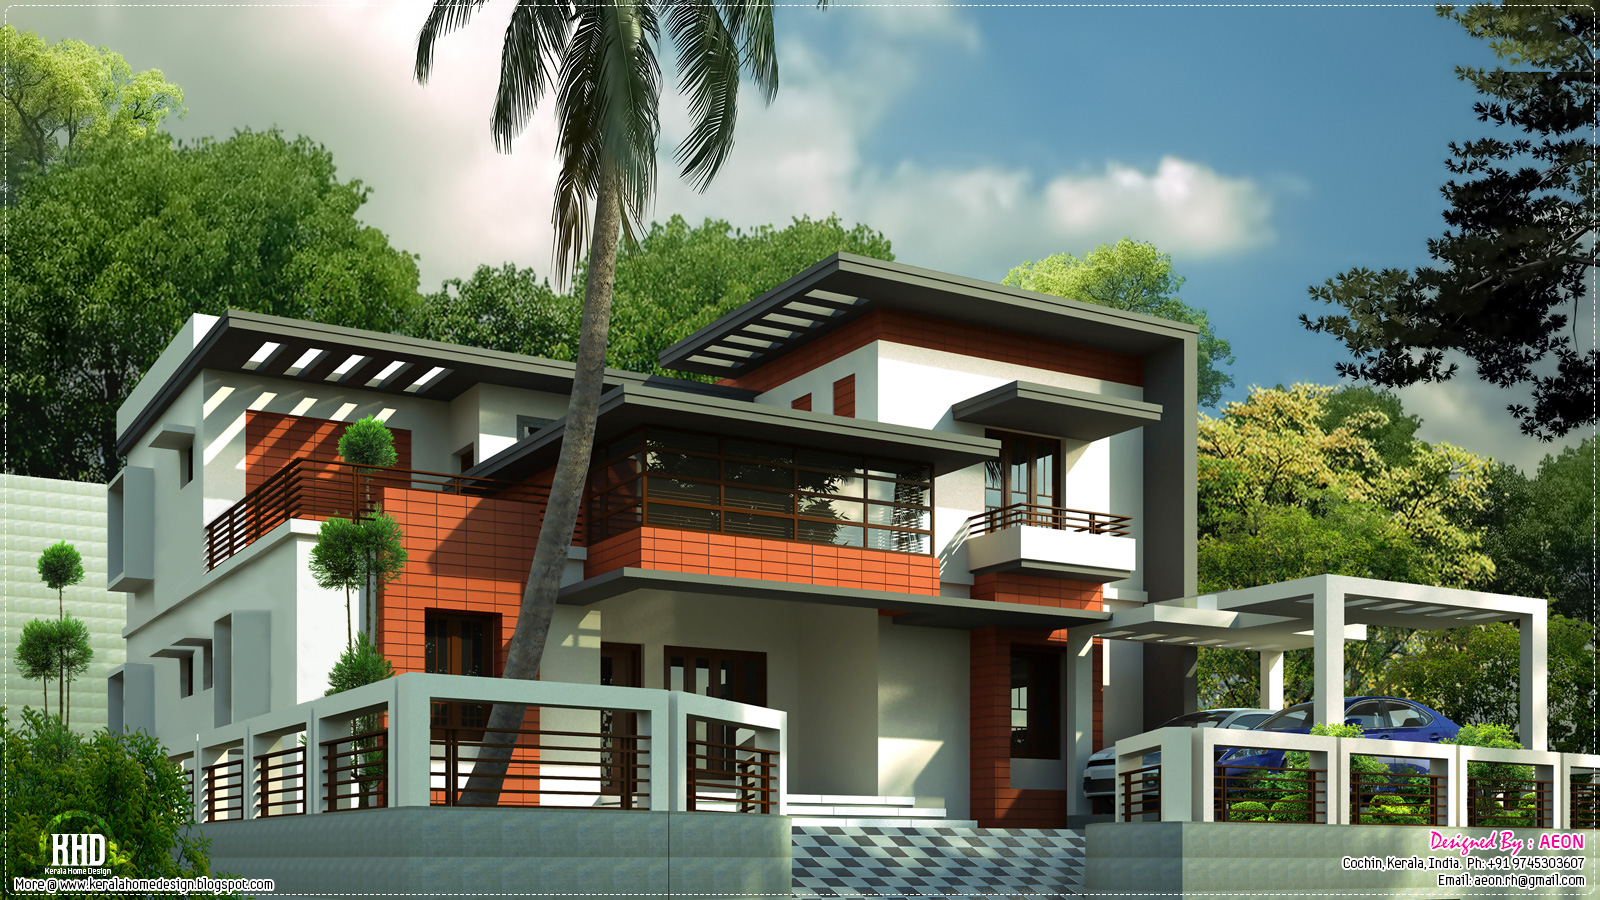 Stunning Kerala Contemporary House Design 1600 x 900 · 645 kB · jpeg